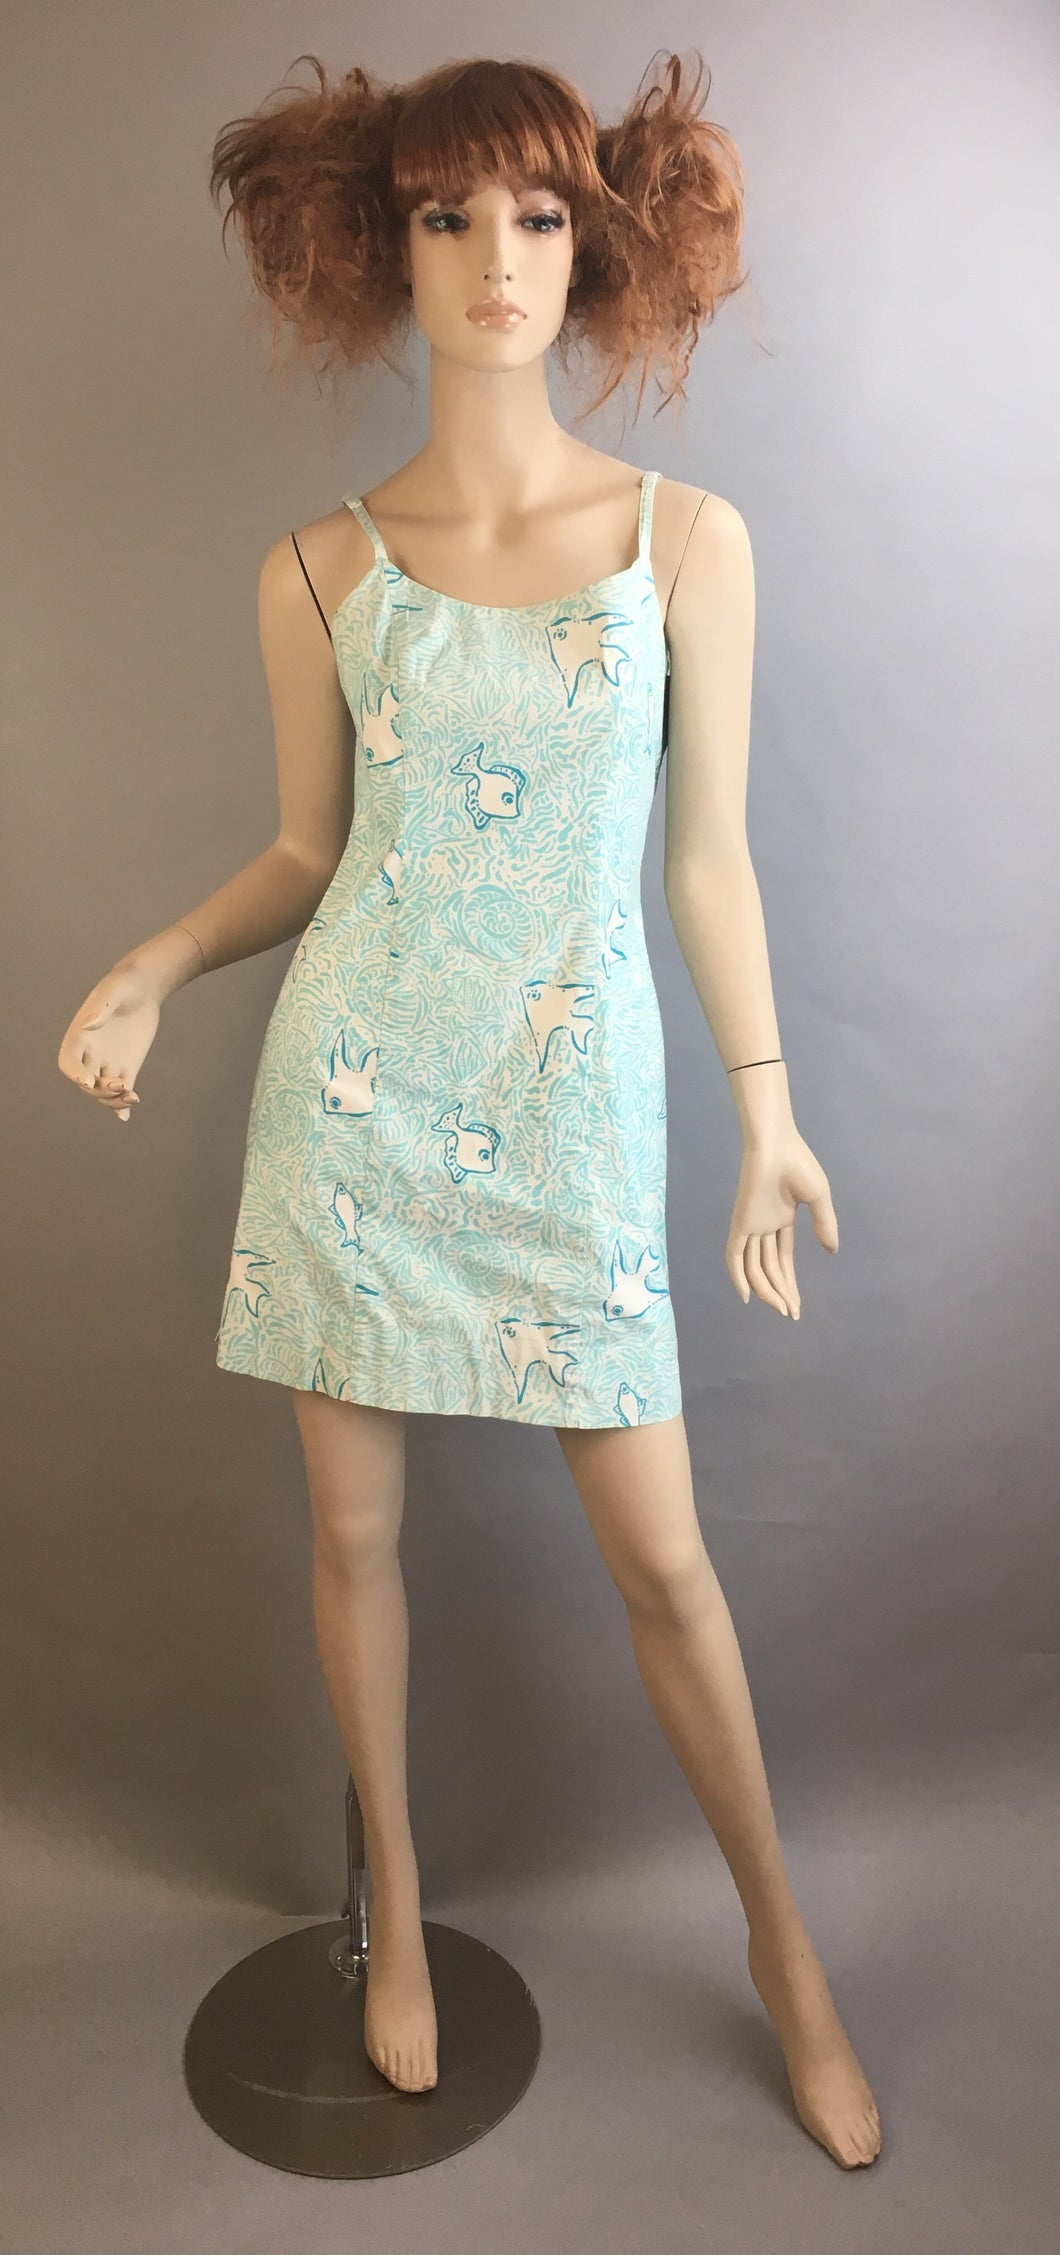 Vintage Lilly Pulitzer Dress// 80s Pastel Print Dress// Preppy Lilly Pulitzer Dress (F1)